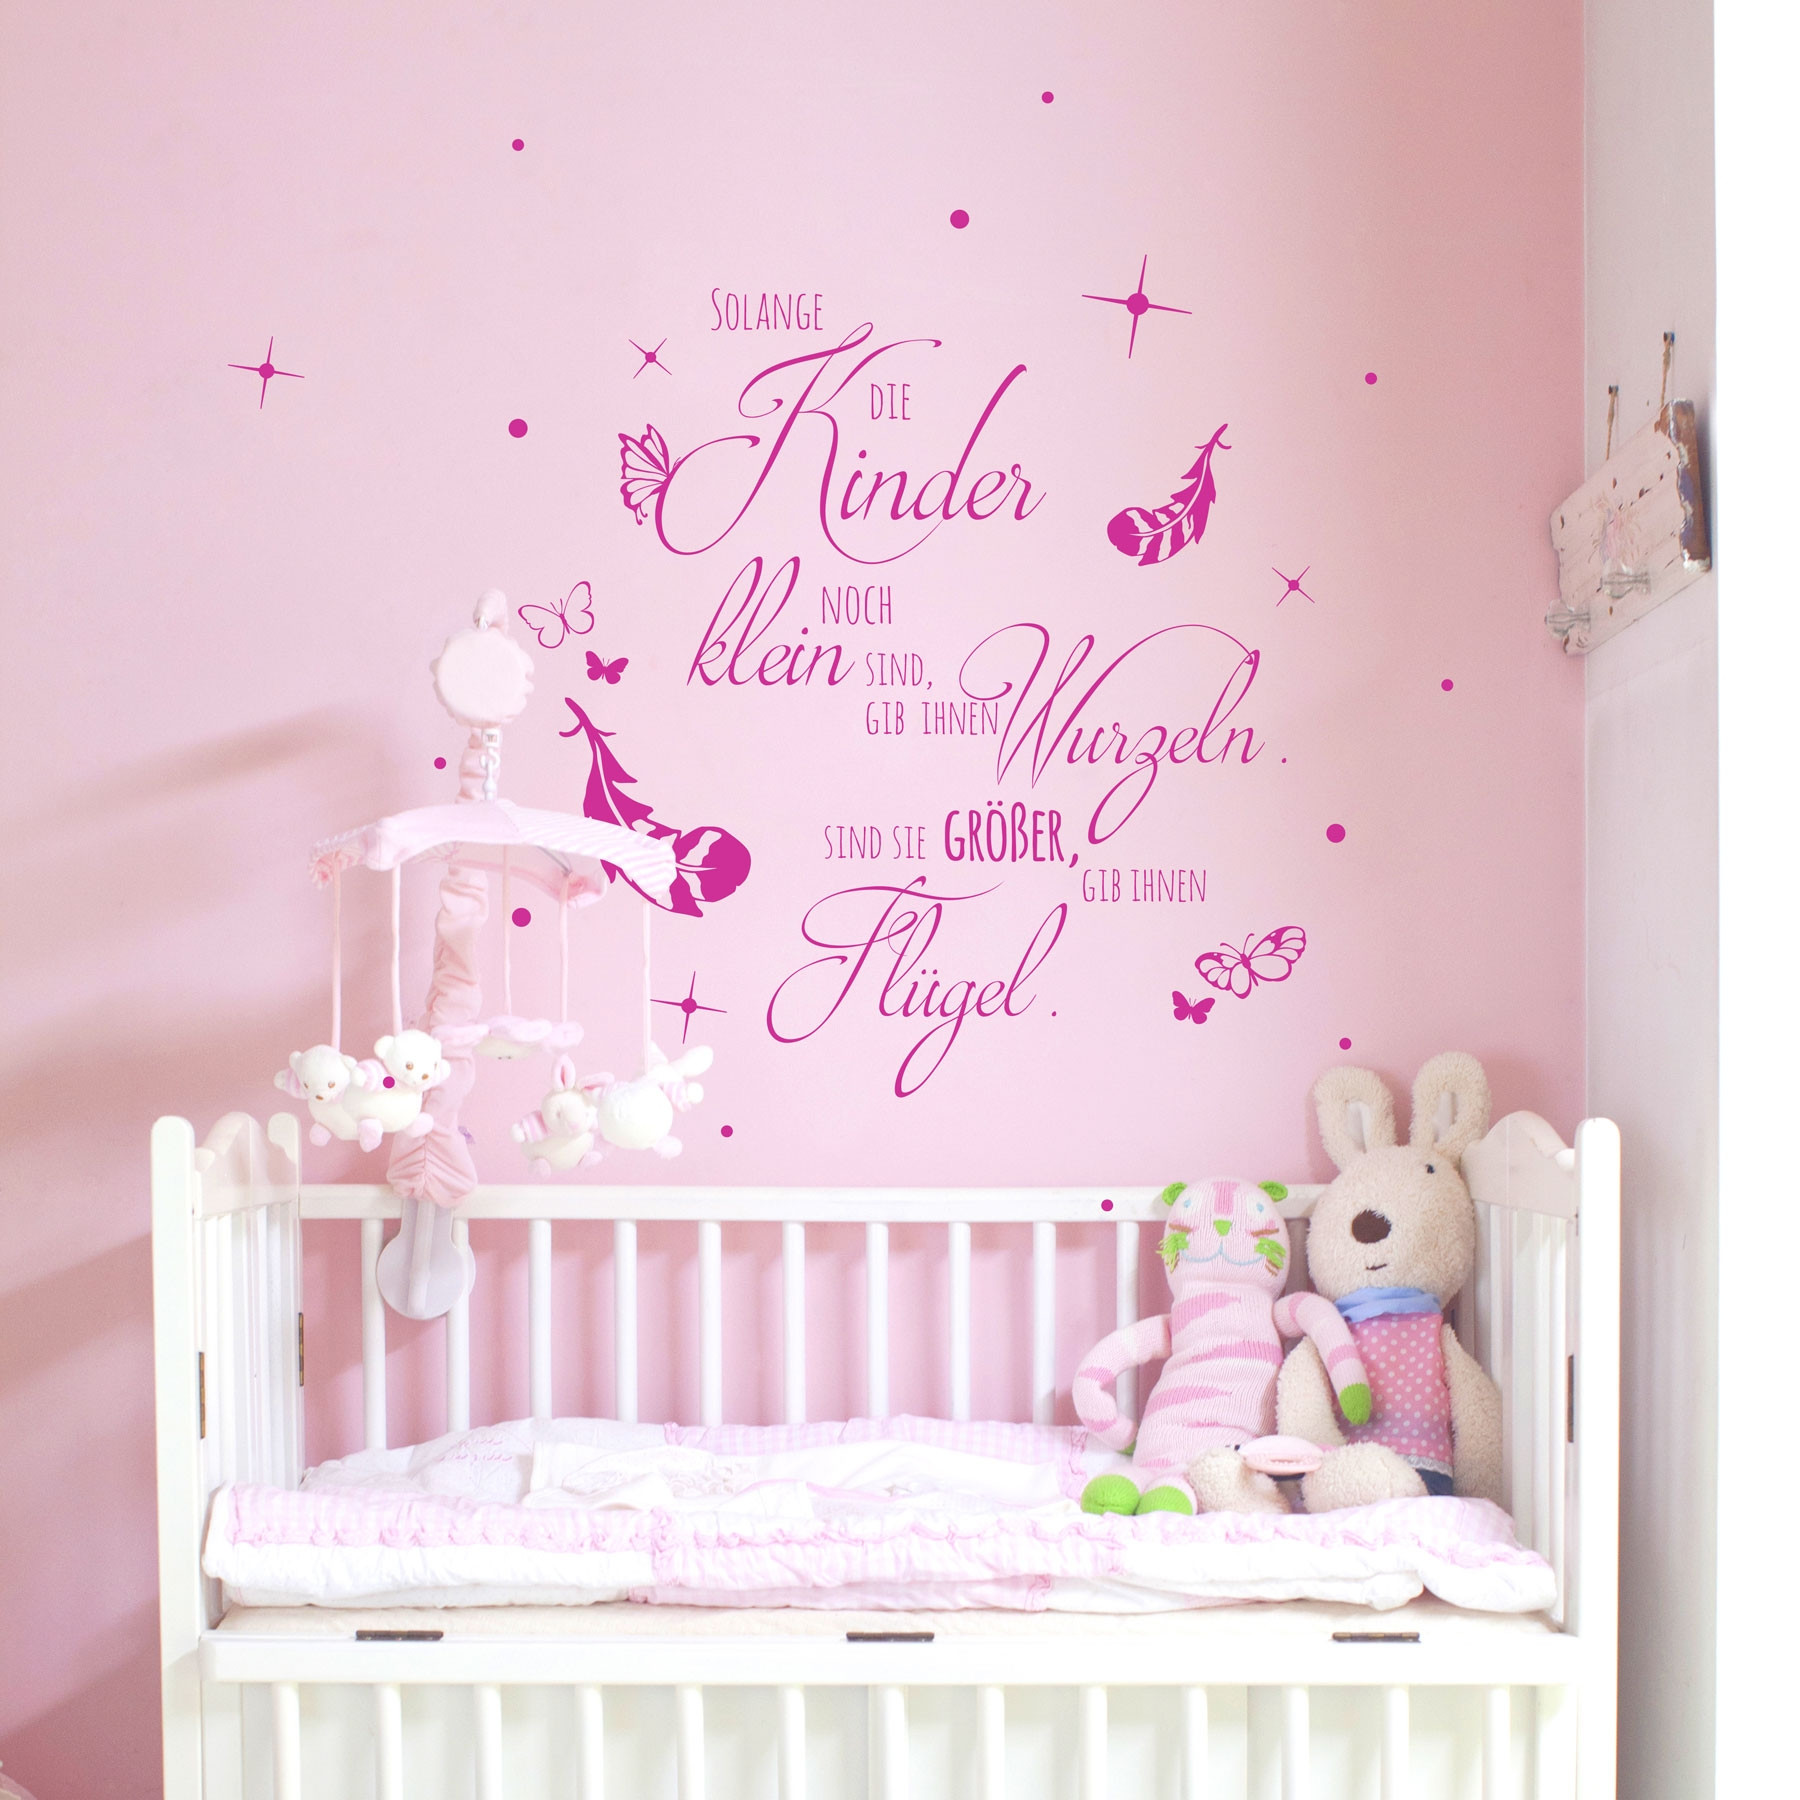 wandtattoo kinderzimmer mit spruch zitat solange kinder klein sind m2155 wandtattoos. Black Bedroom Furniture Sets. Home Design Ideas